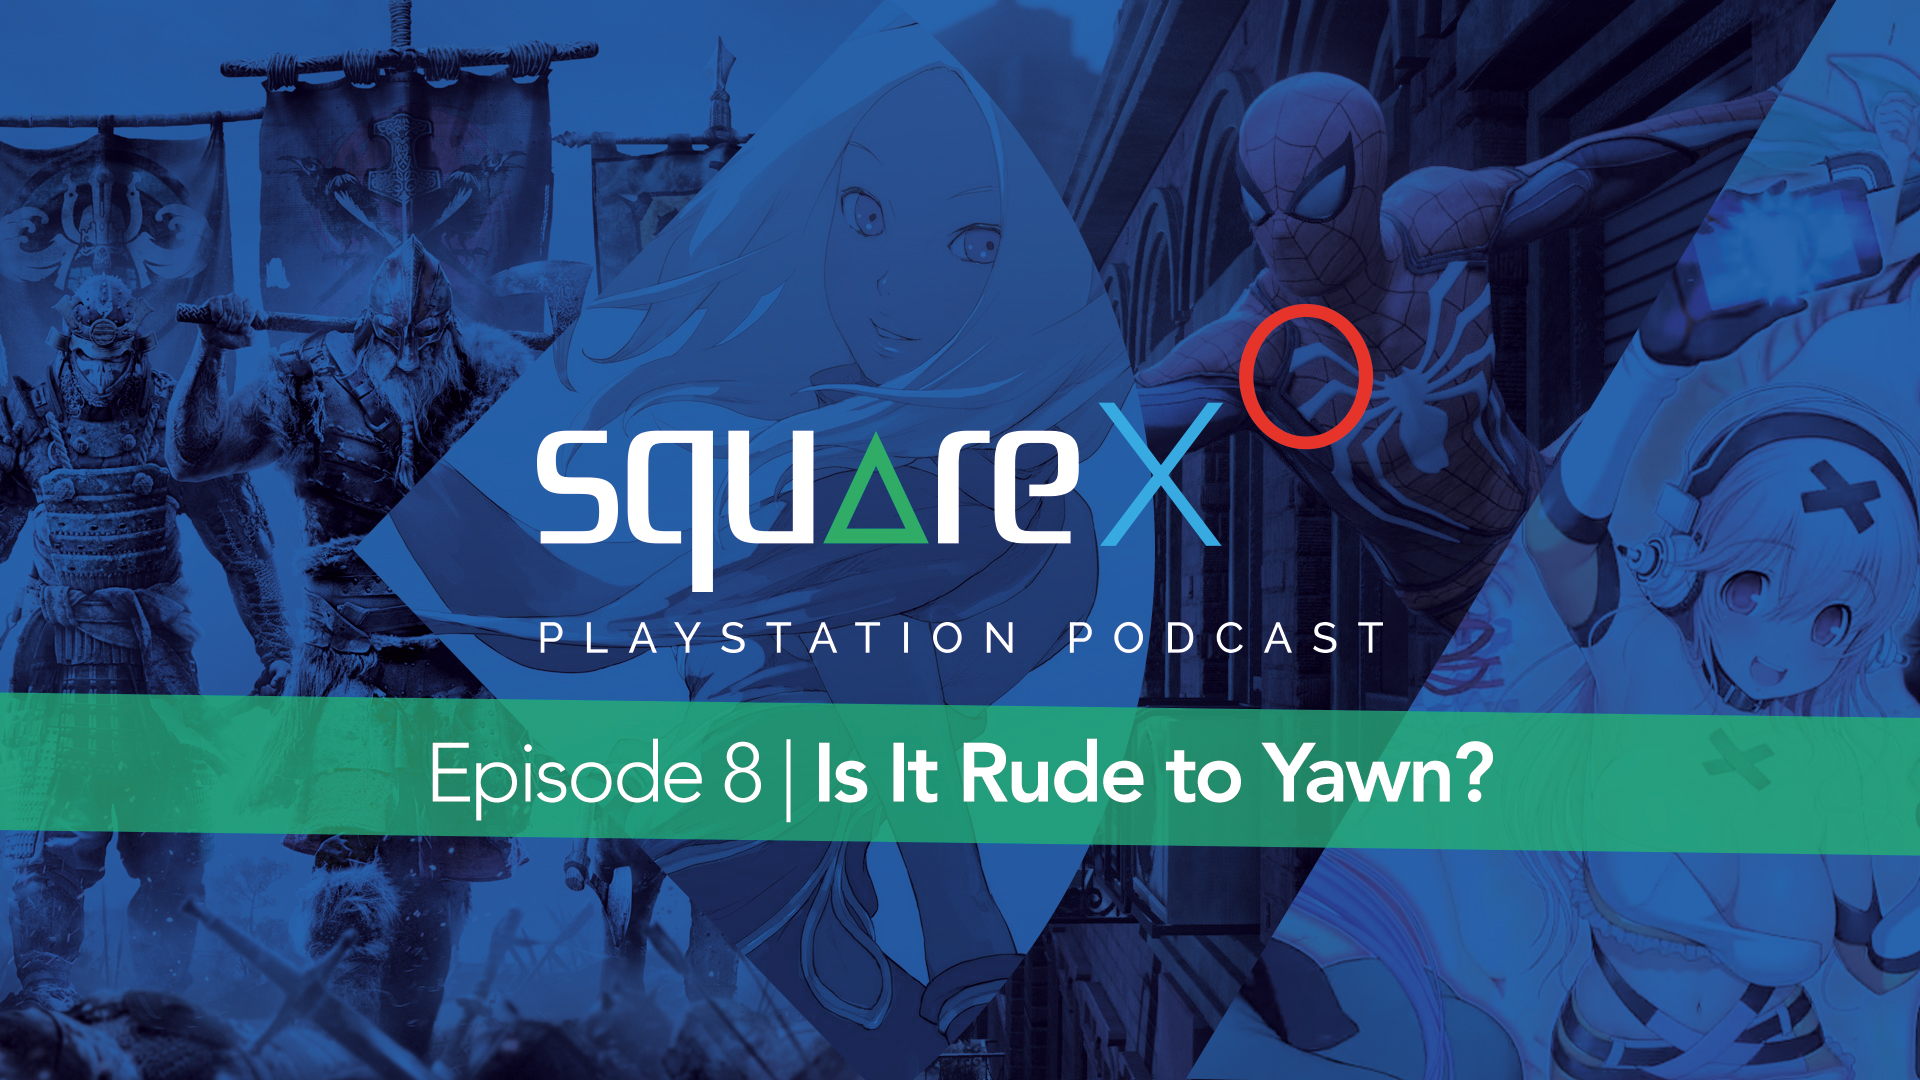 Episode 8 | Is It Rude to Yawn